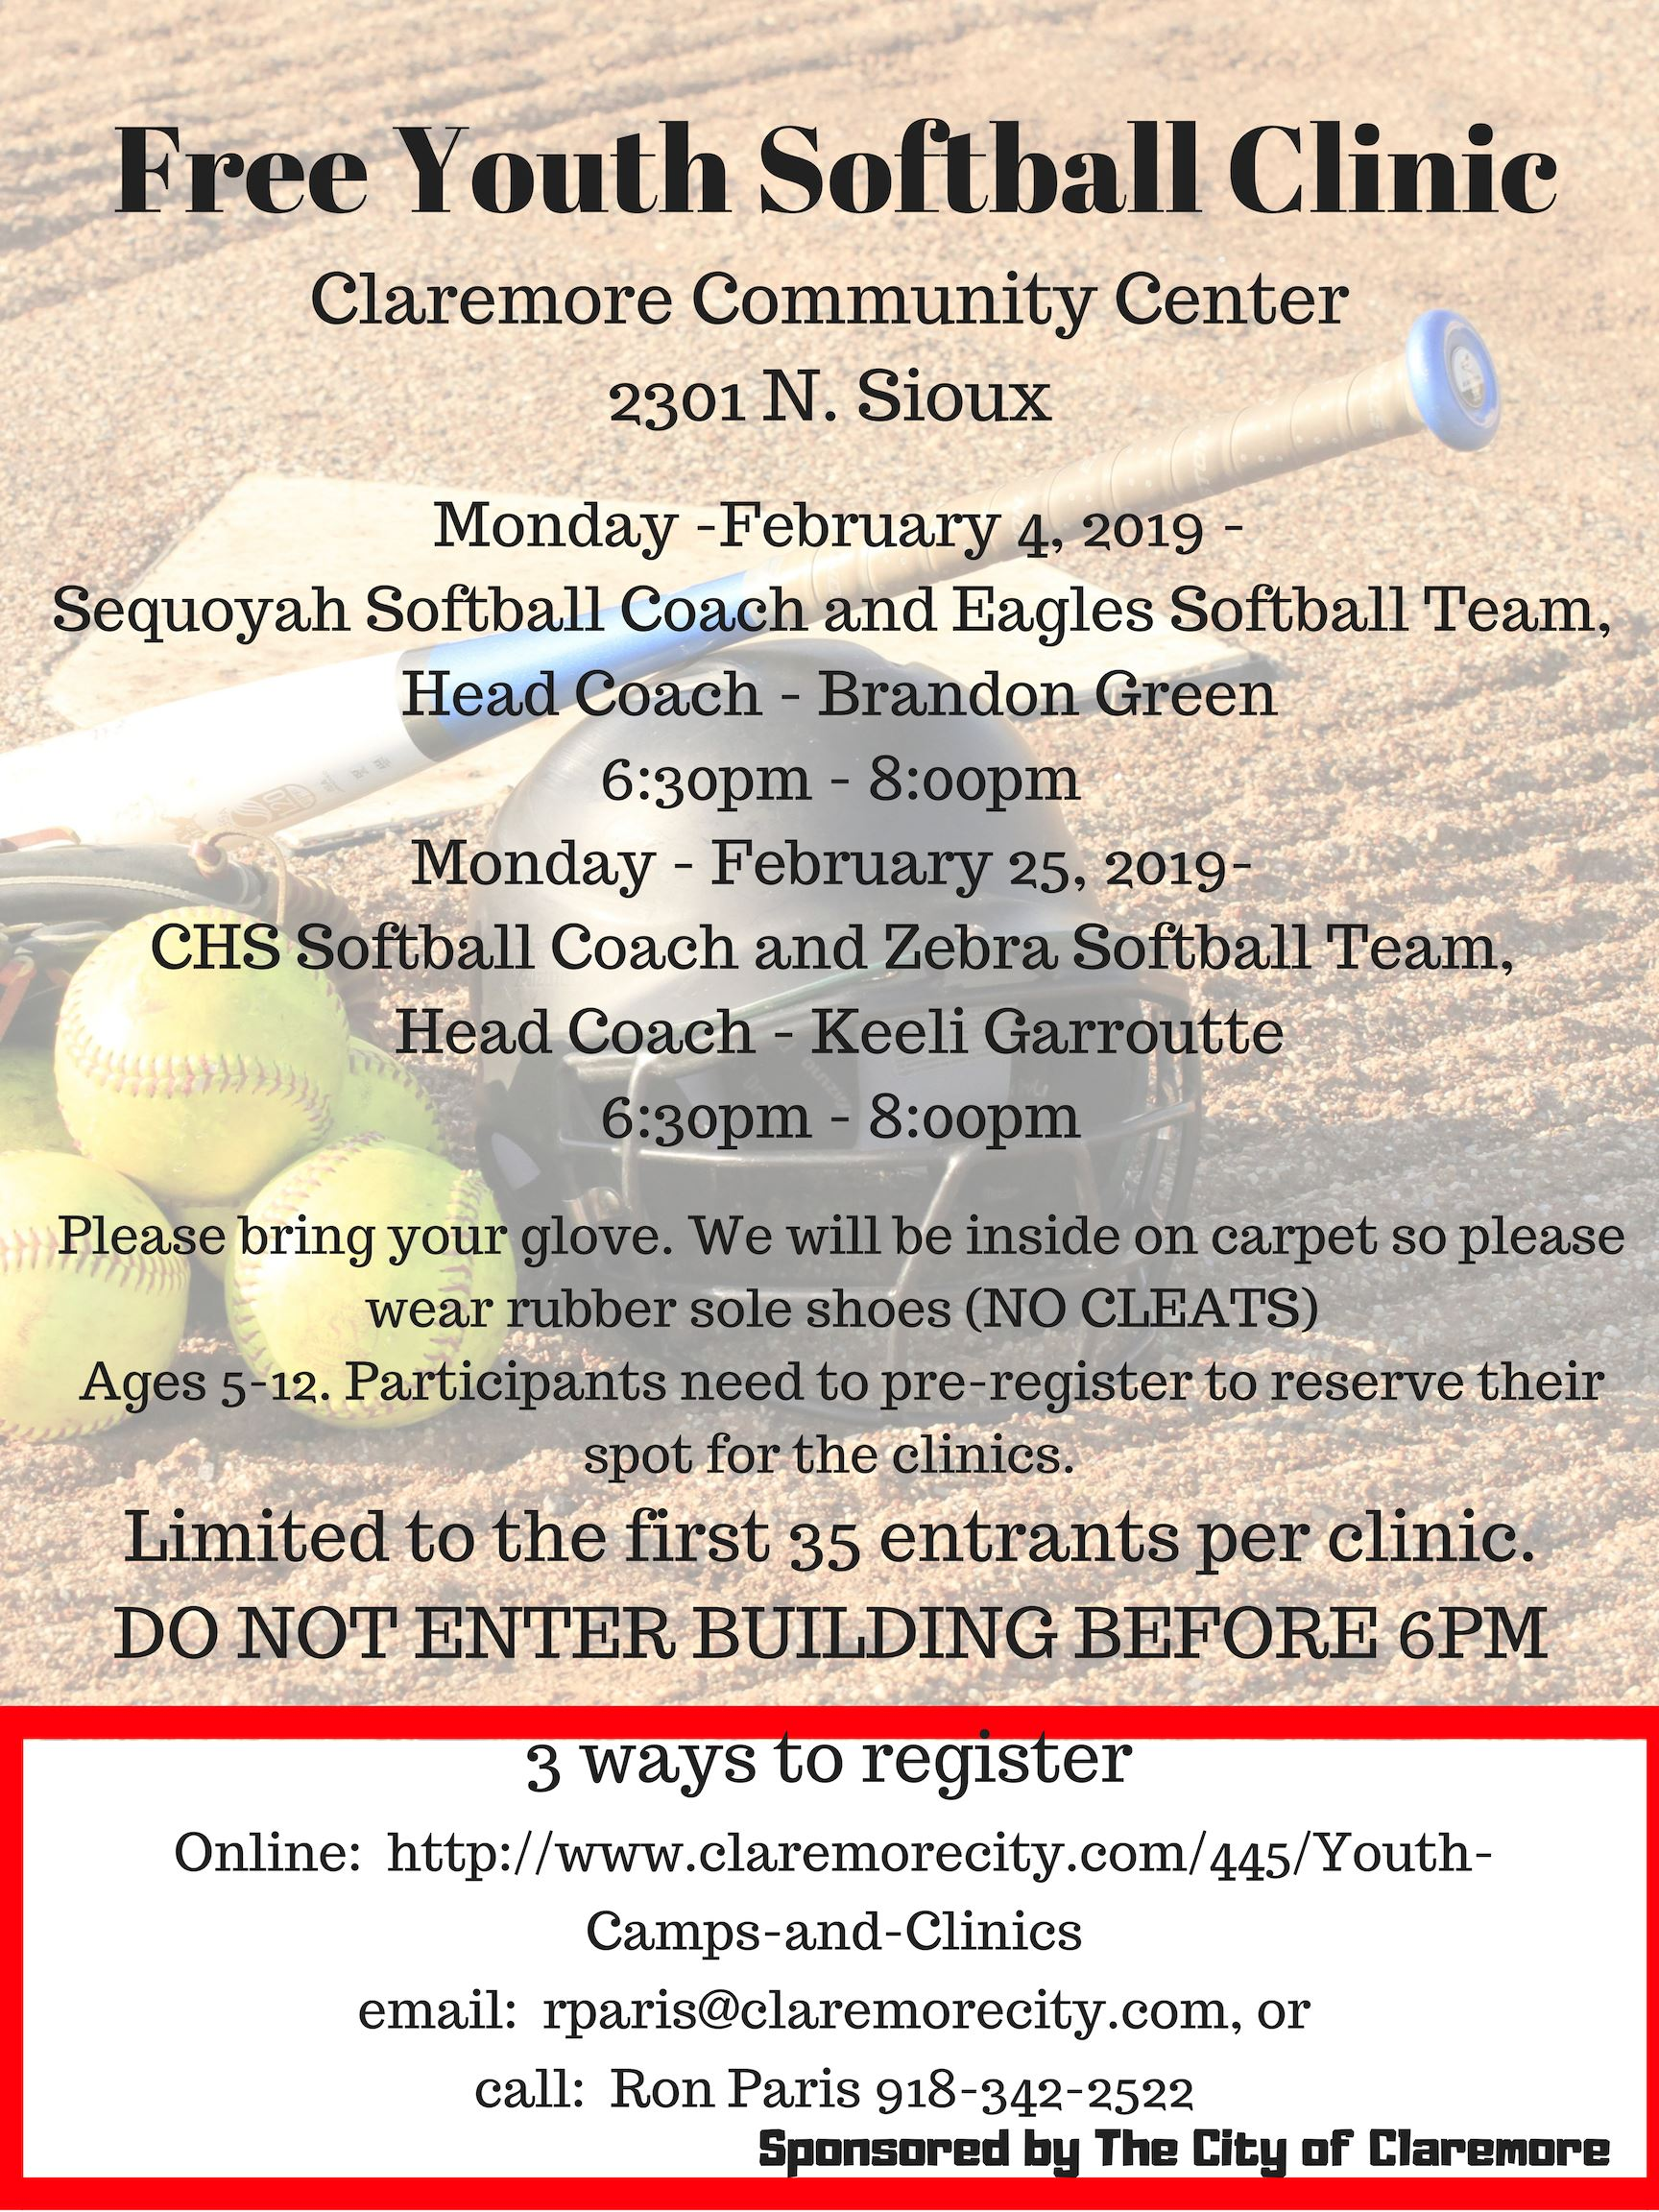 Free Youth Softball Clinic